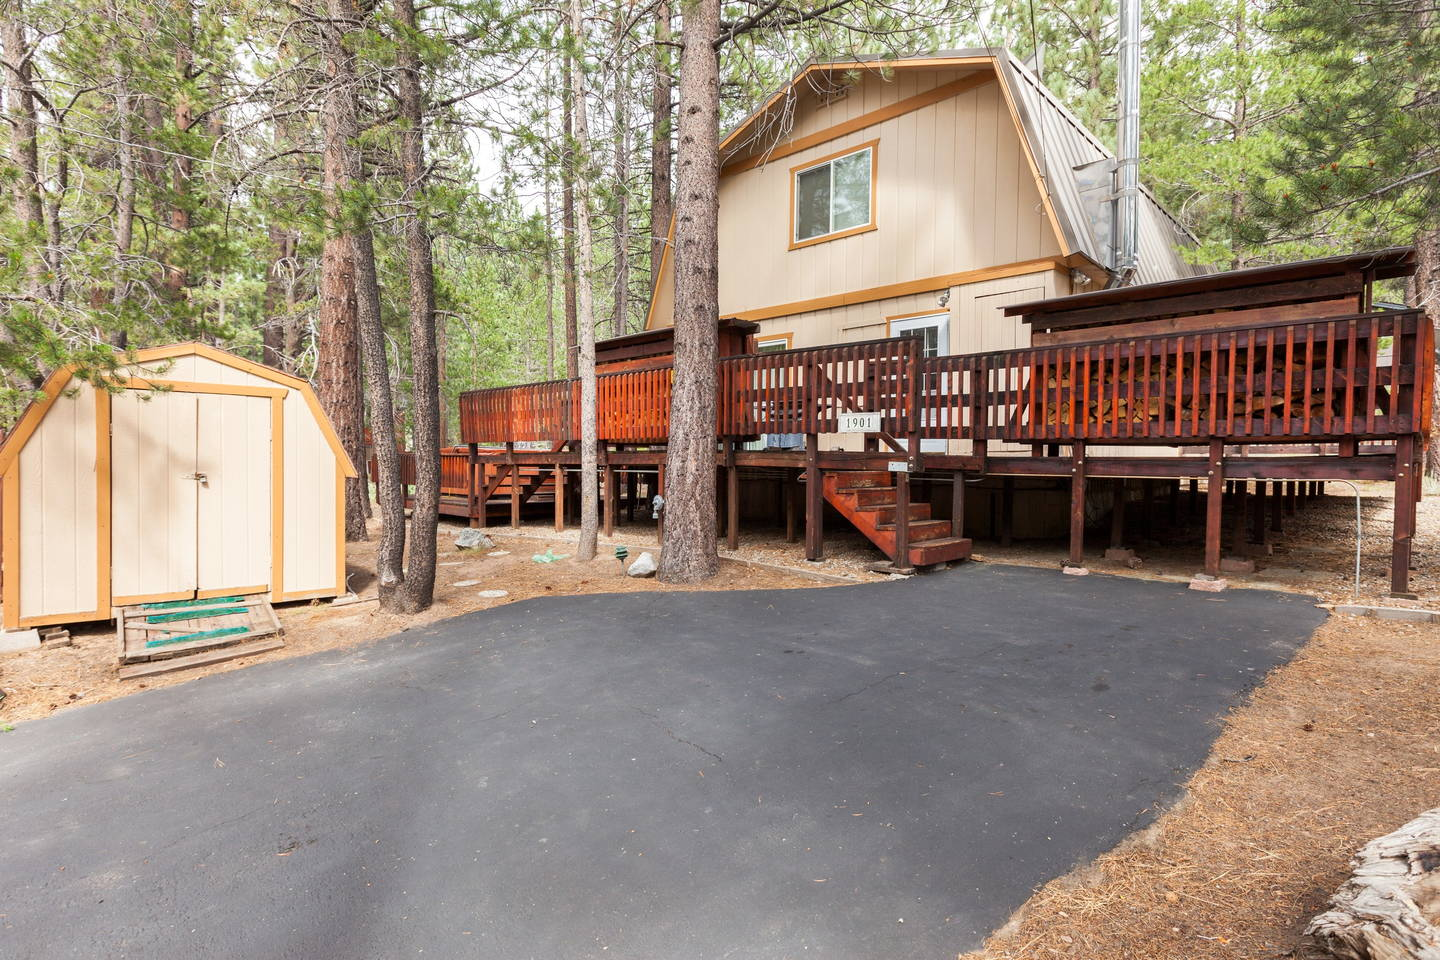 tahoe luxury for shore sale friendly lake nevada rentals cabins in south dog rental